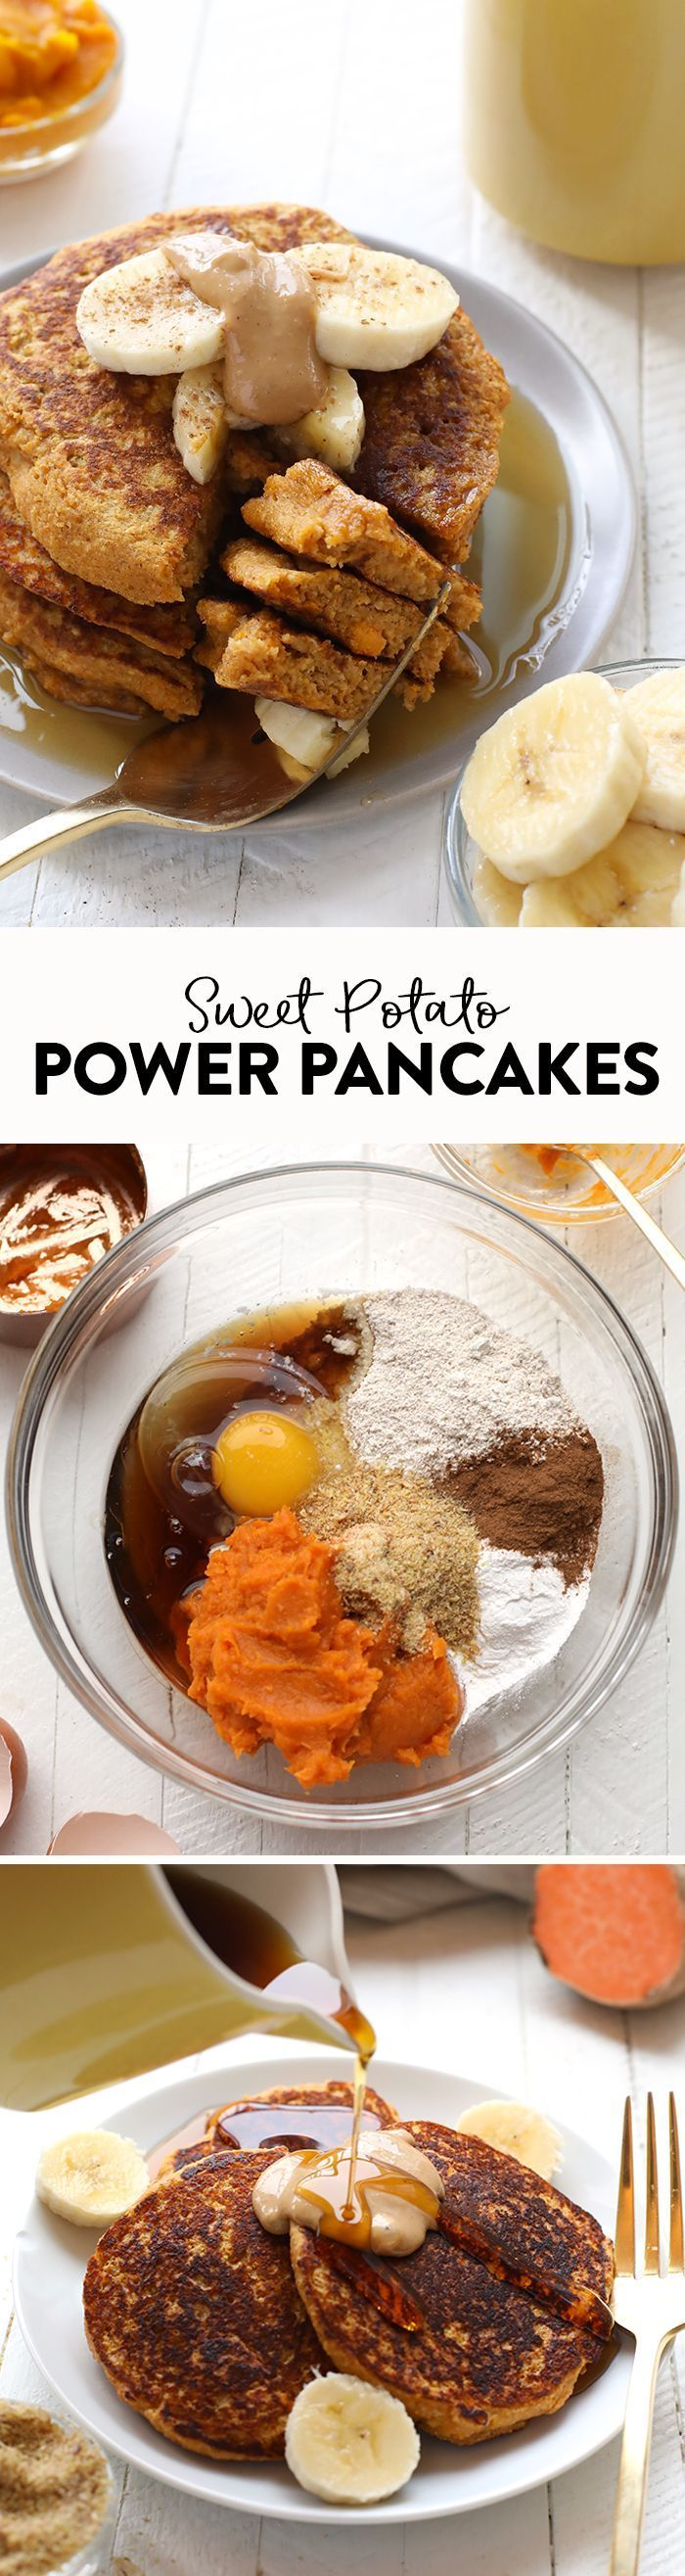 Start your morning out right with these Sweet Potato Power Pancakes! They�re made with 100% oat flour and sweet potato puree and are packed with vitamin A and fiber so you�ll feel energized all day long. #ad